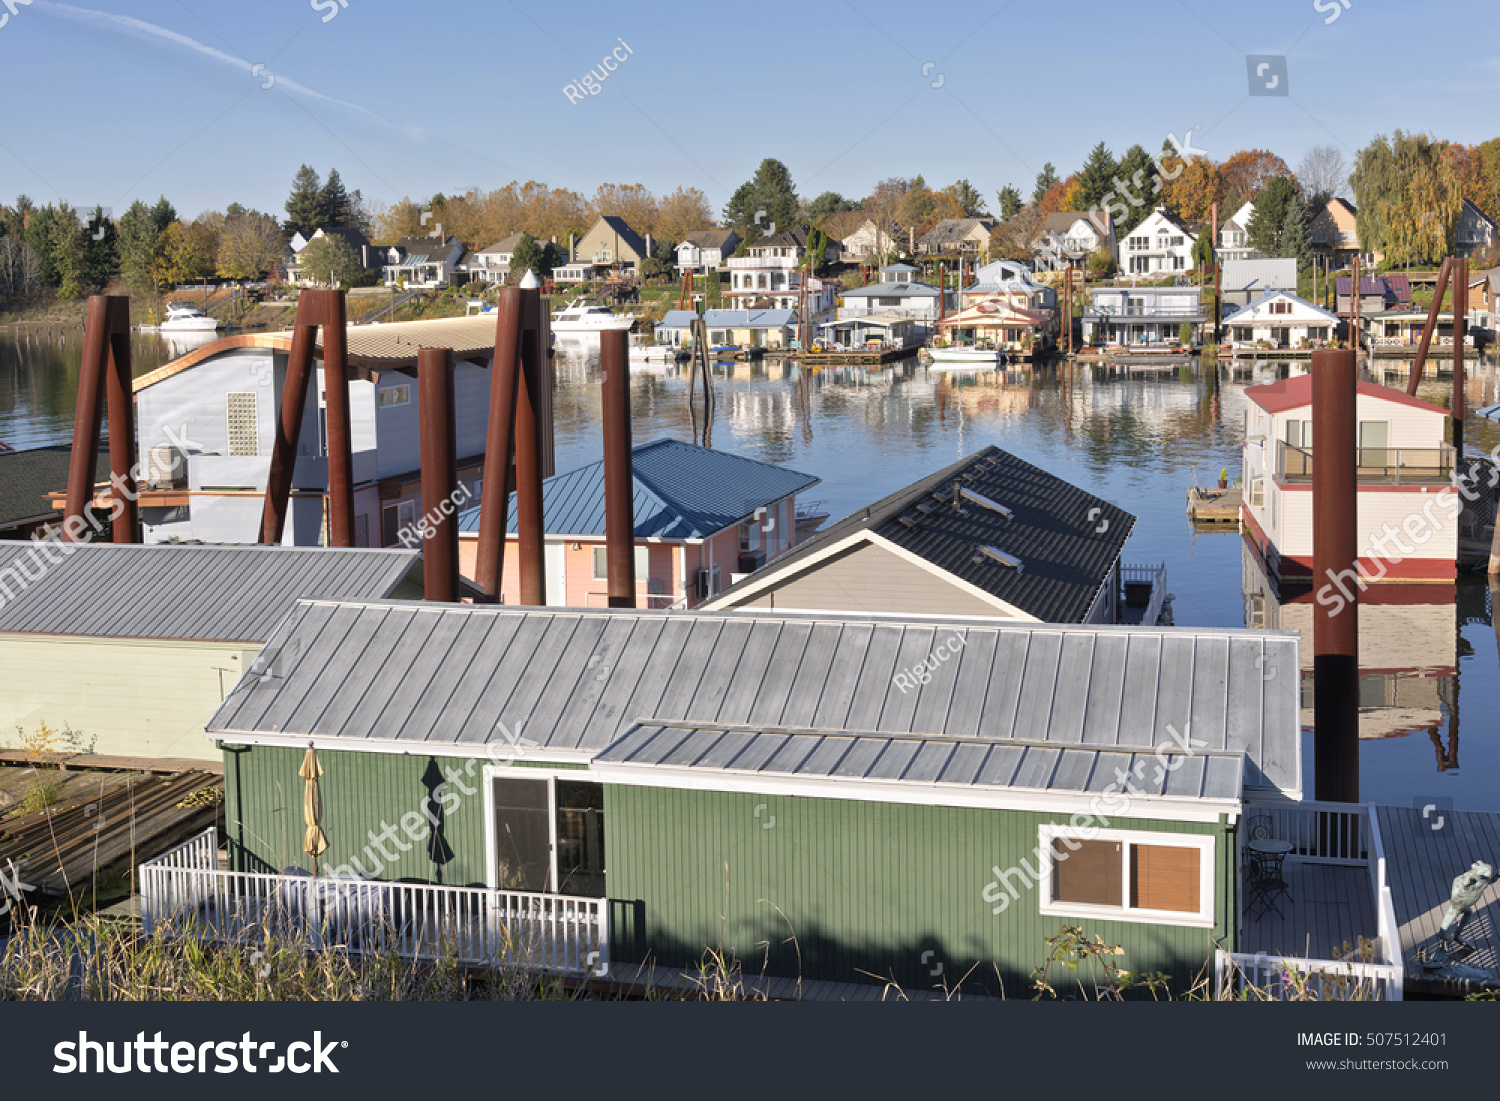 Floating homes docked boats portland oregon stock photo for Floating homes portland